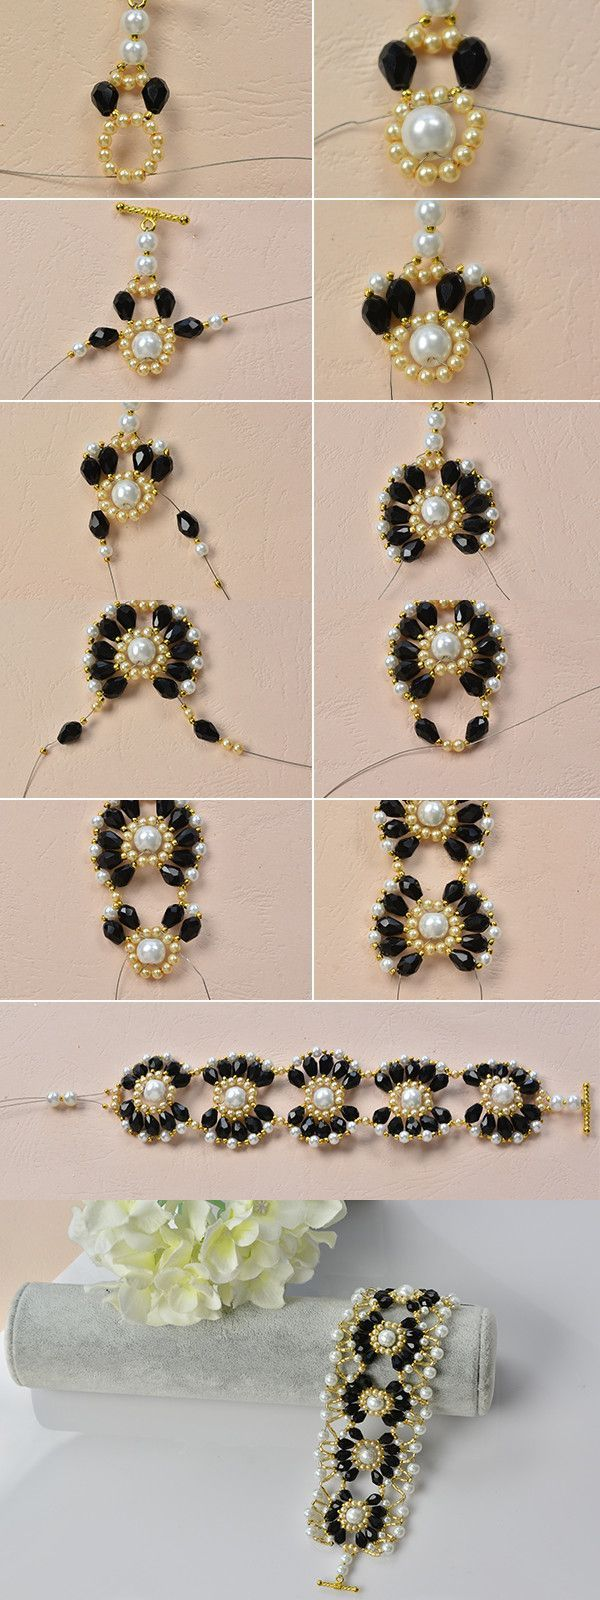 flower beaded bracelet, beautiful, right? Then LC.Pandahall.com will tell you the making details